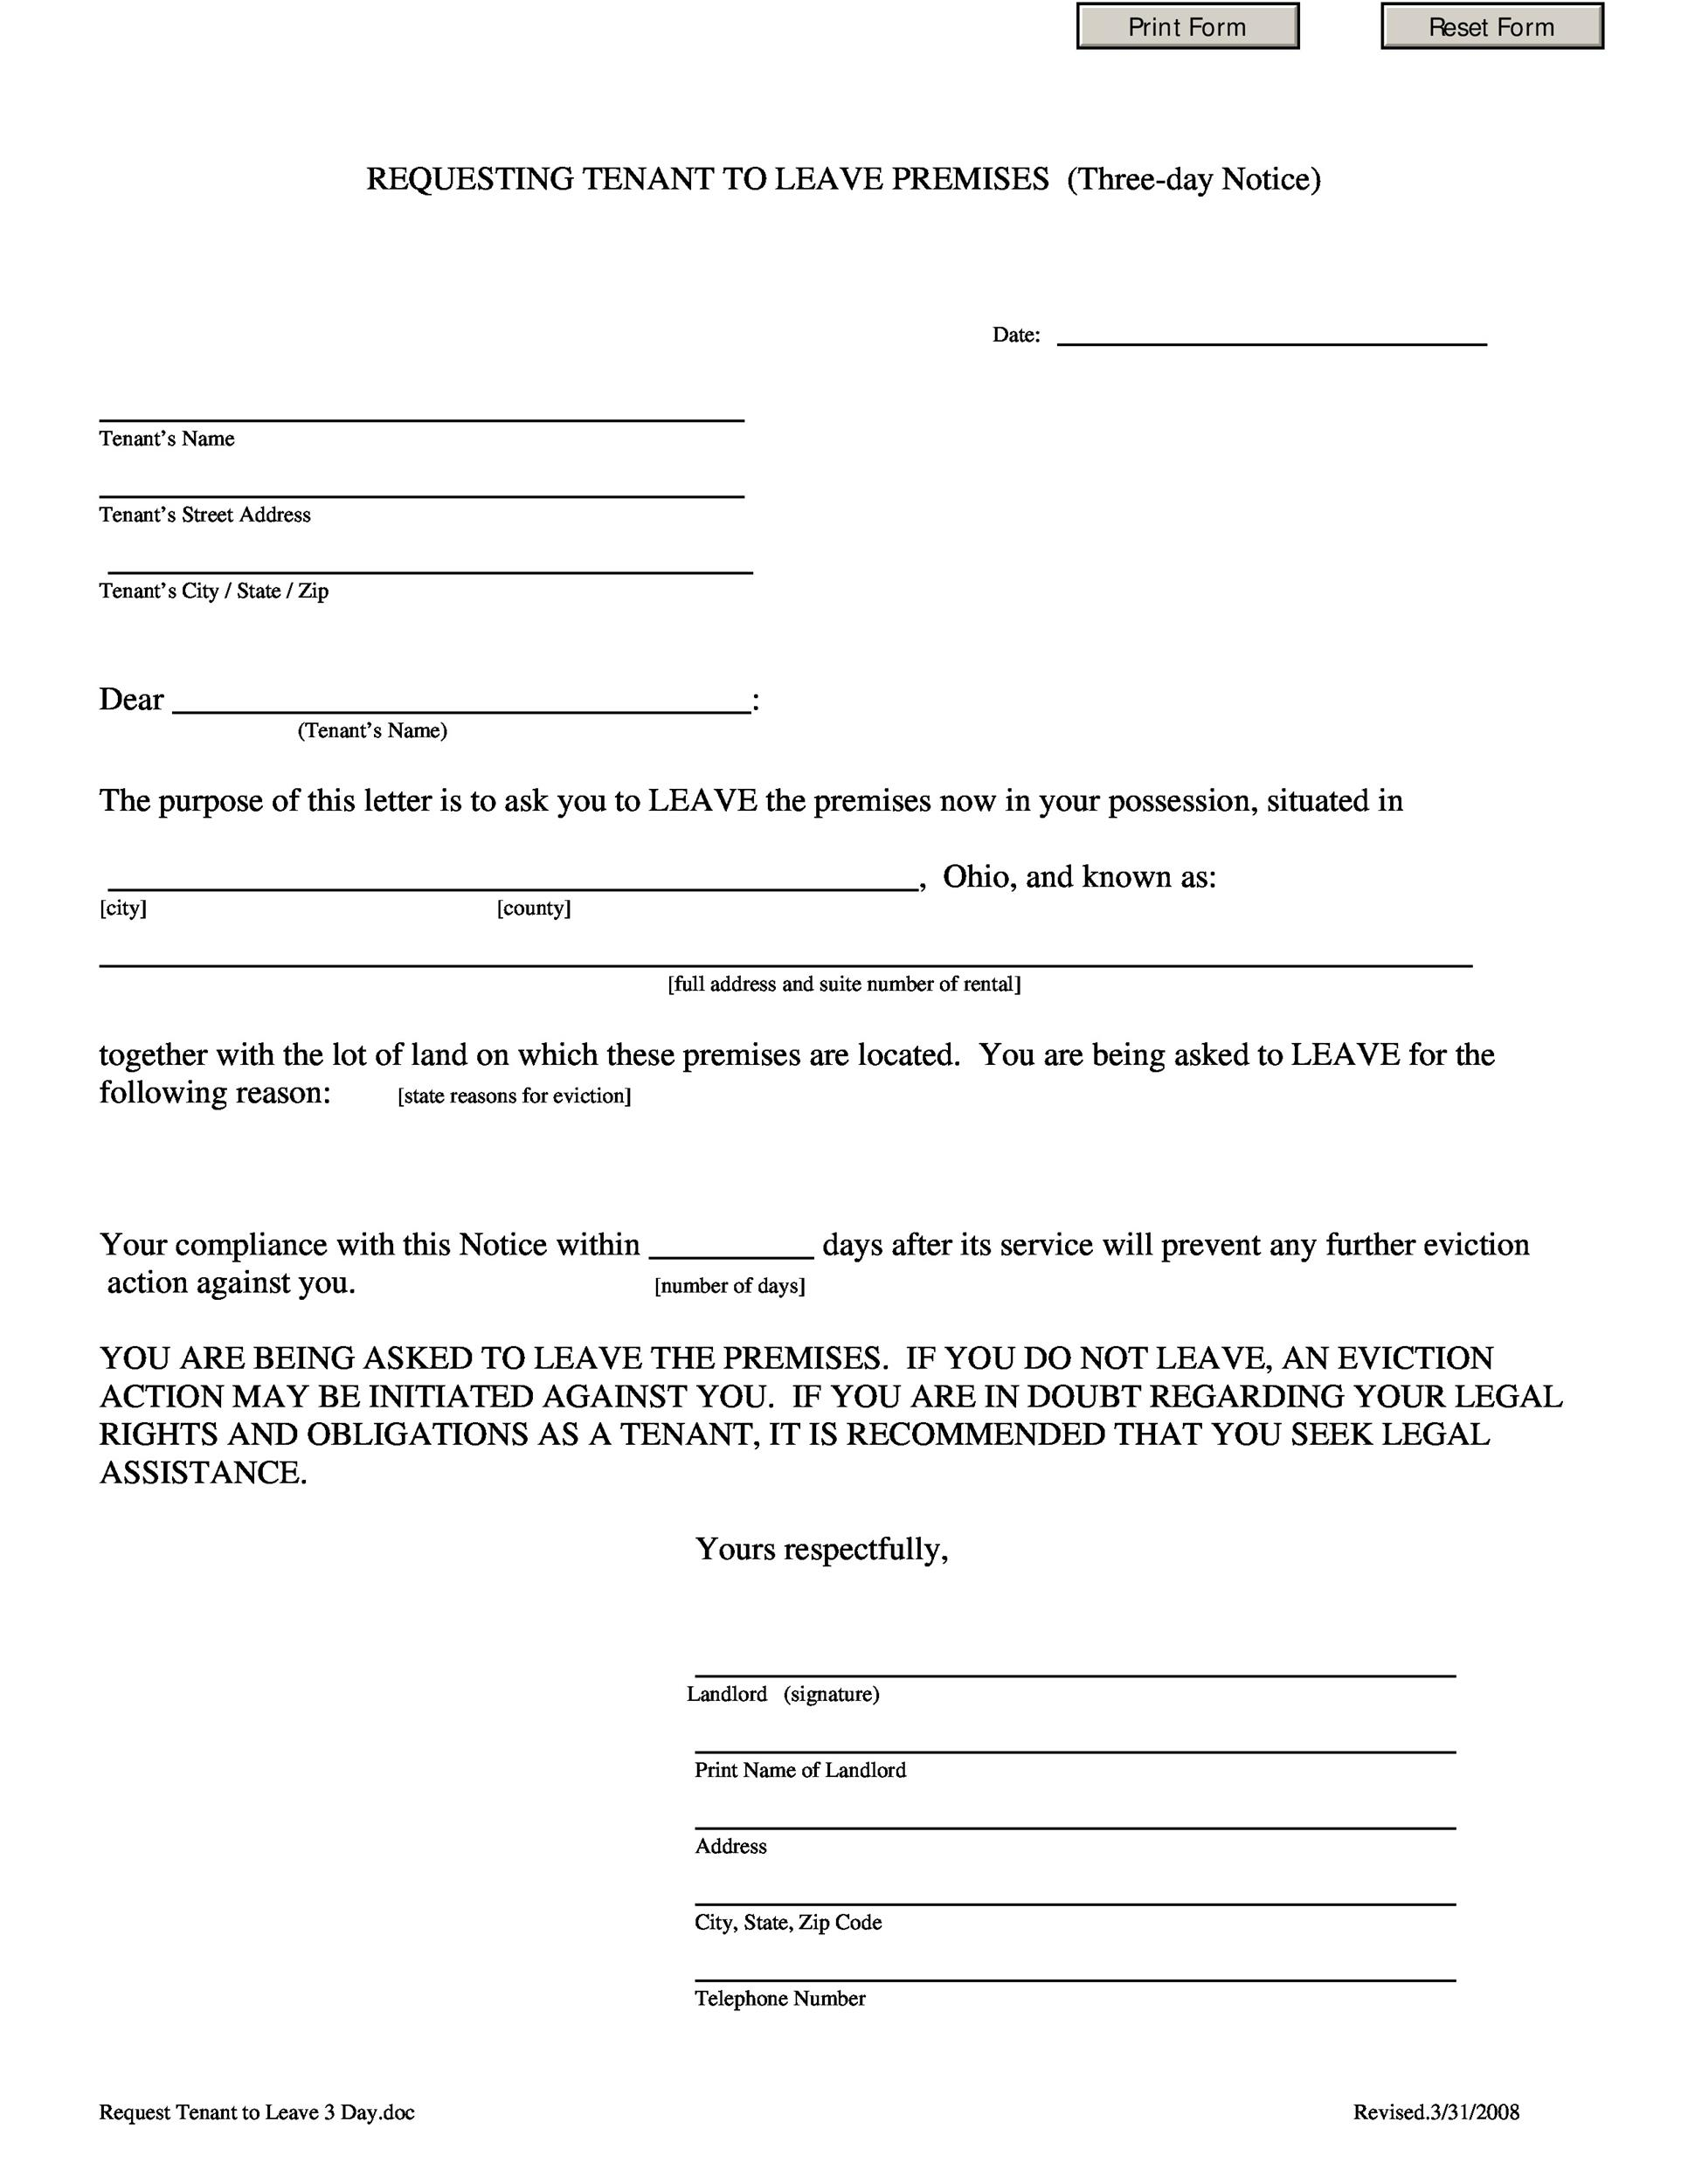 sample lease termination